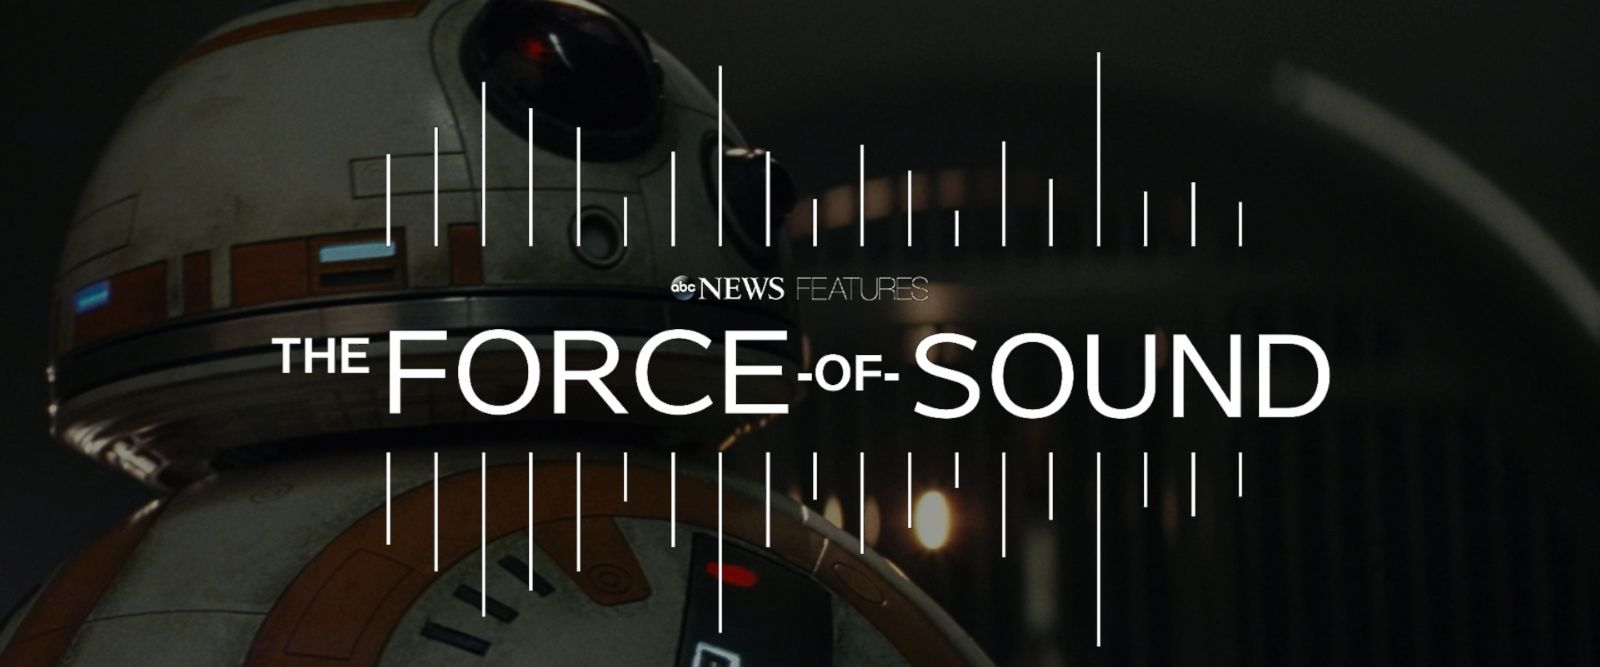 VIDEO: The Force of Sound: Creating sounds in galaxy far, far away